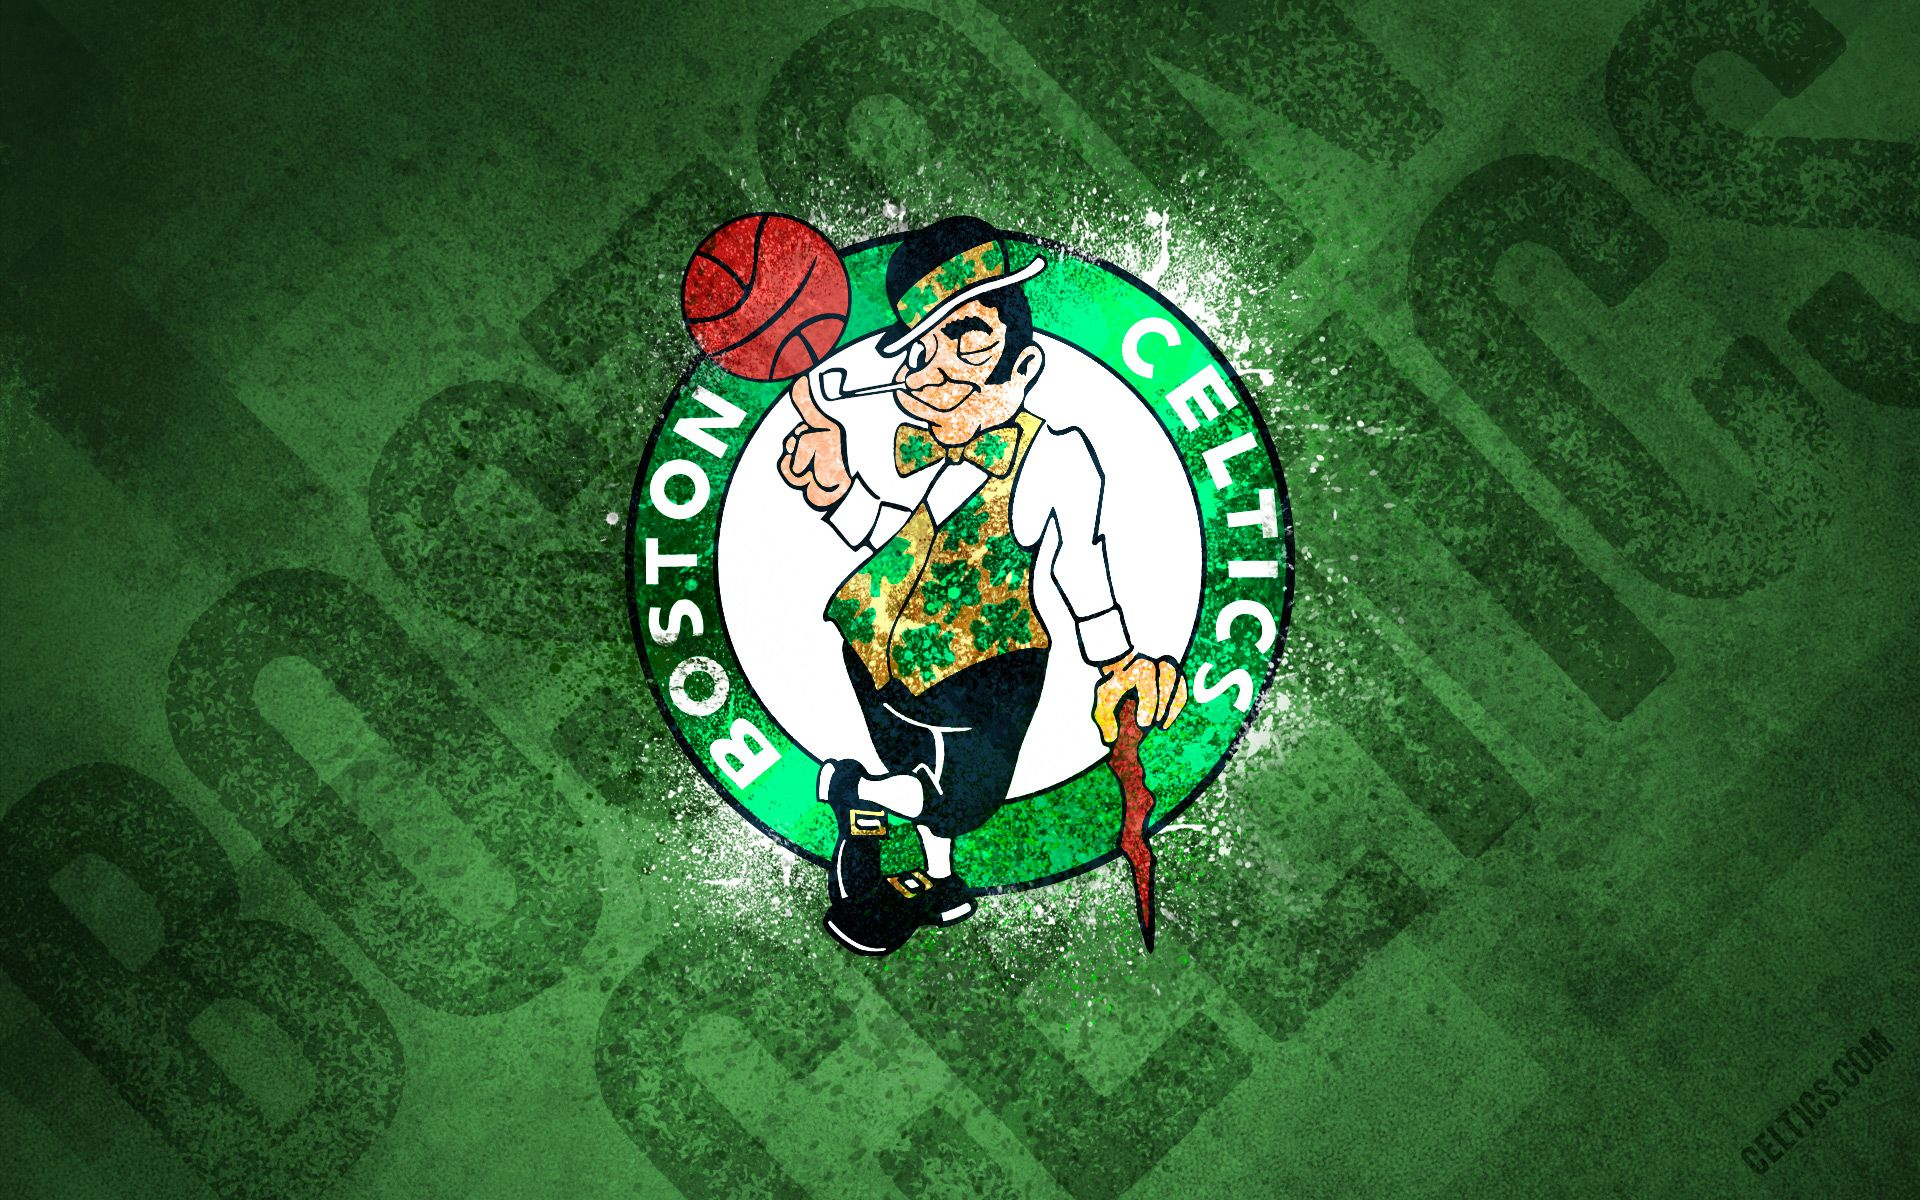 Desktop Wallpaper Boston celtics wallpaper, Boston